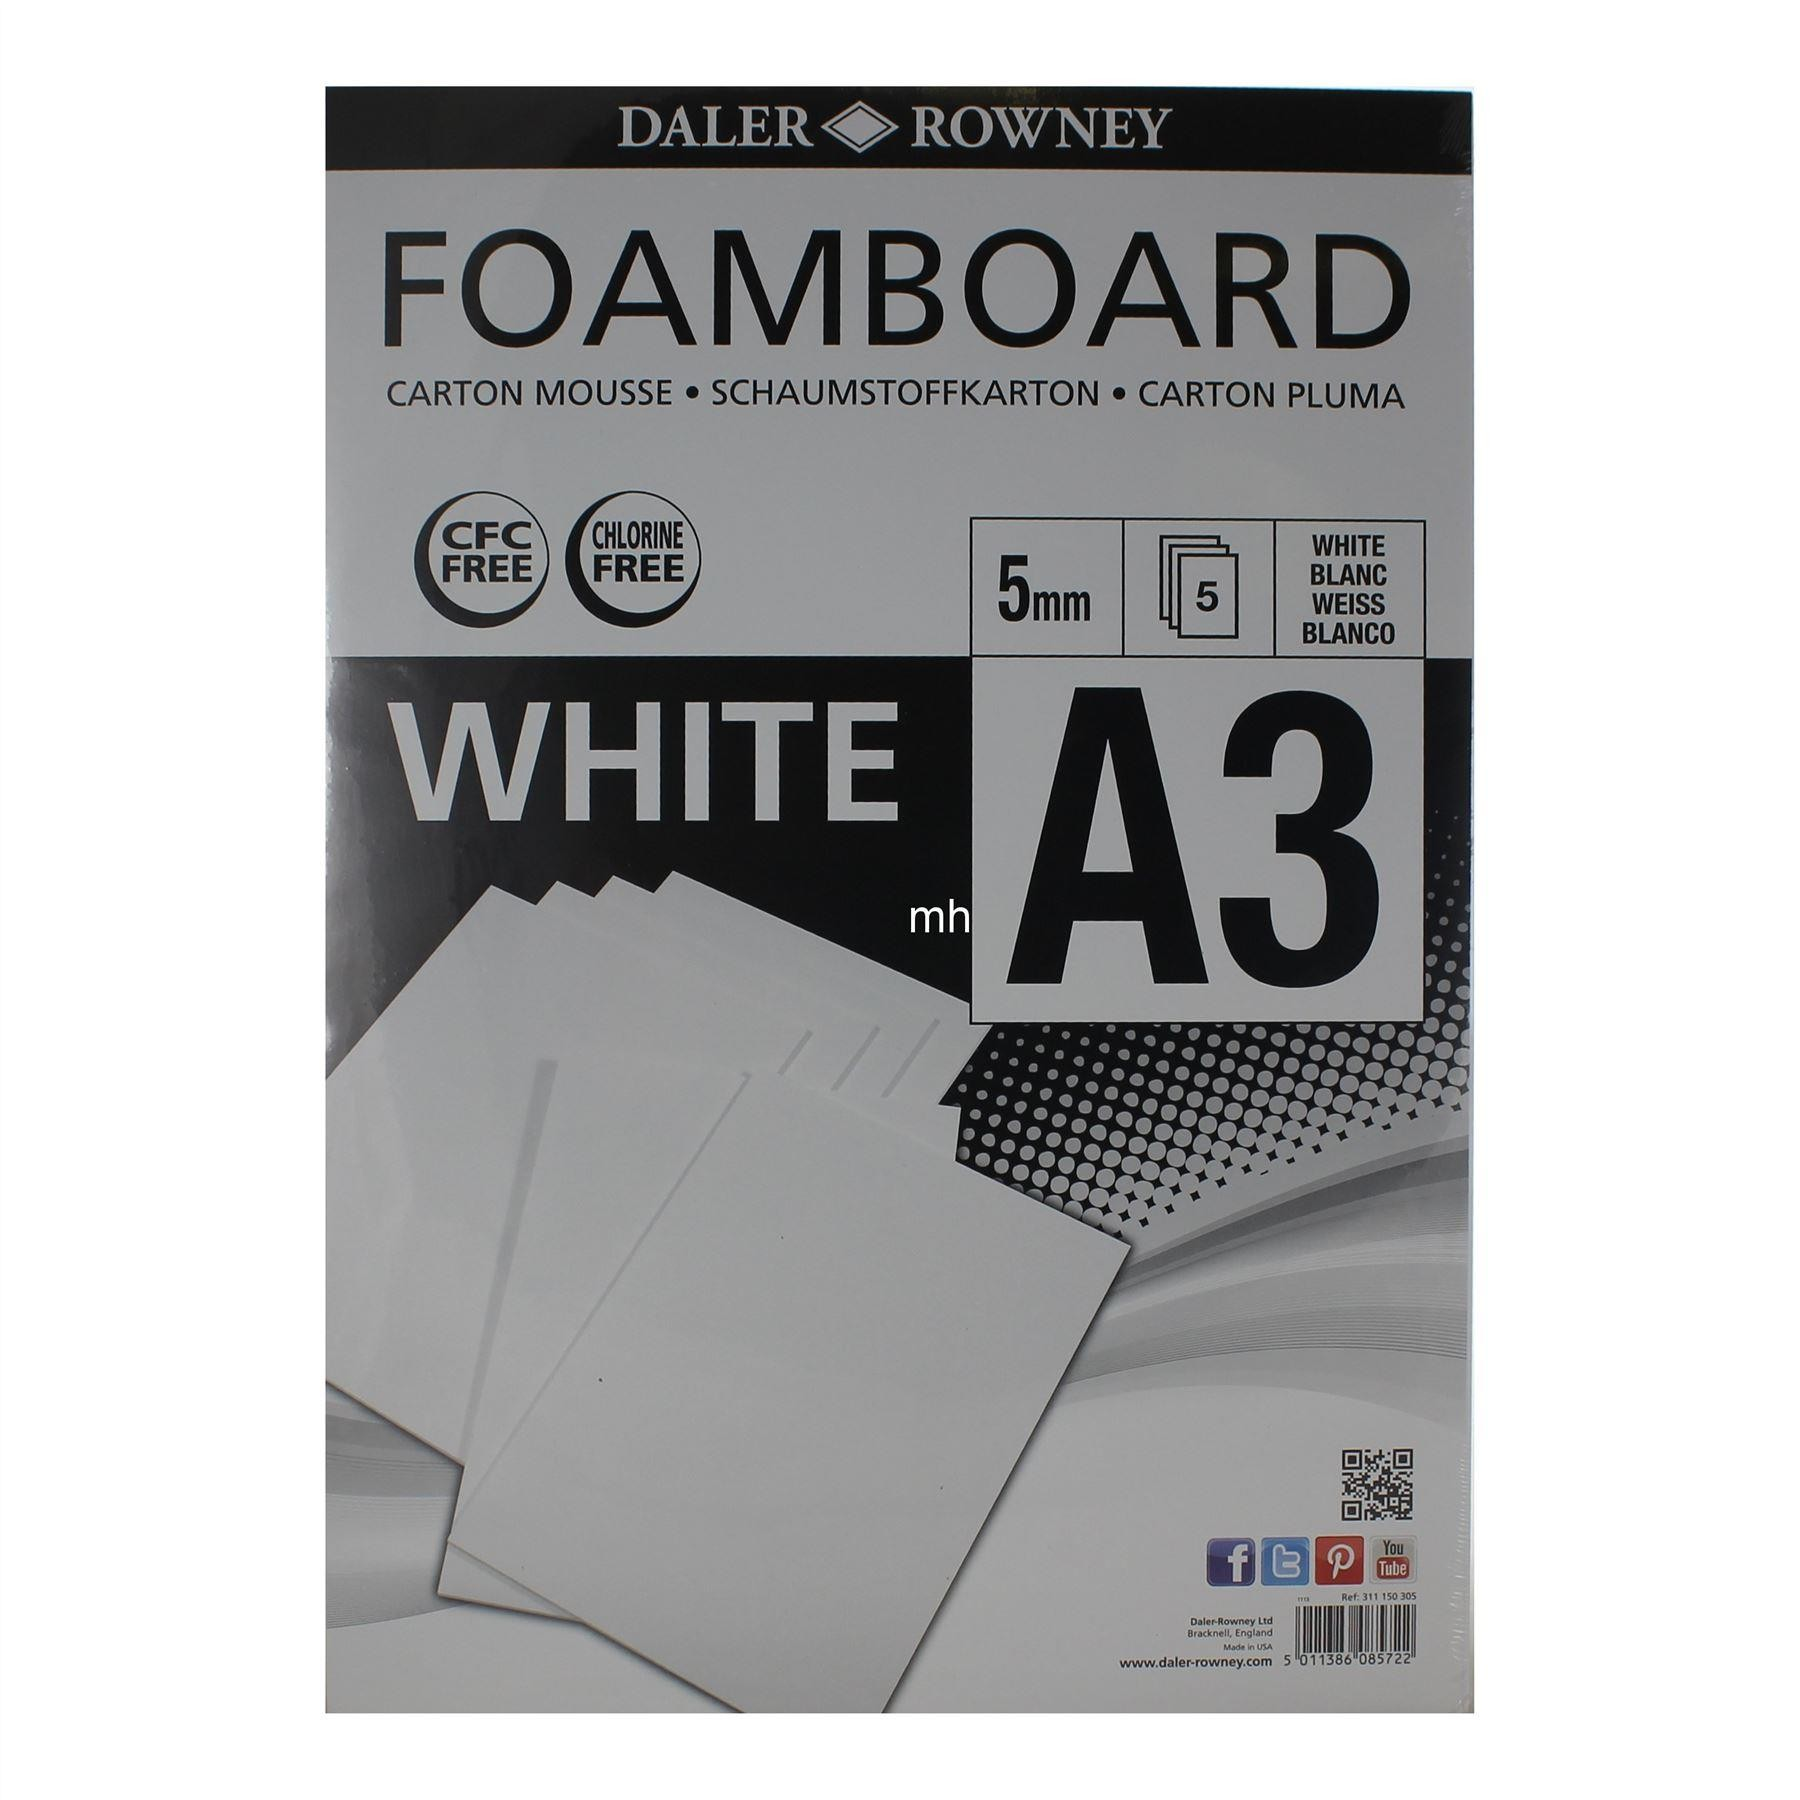 Daler Rowney A3 5 PACK Foamboard White 5mm